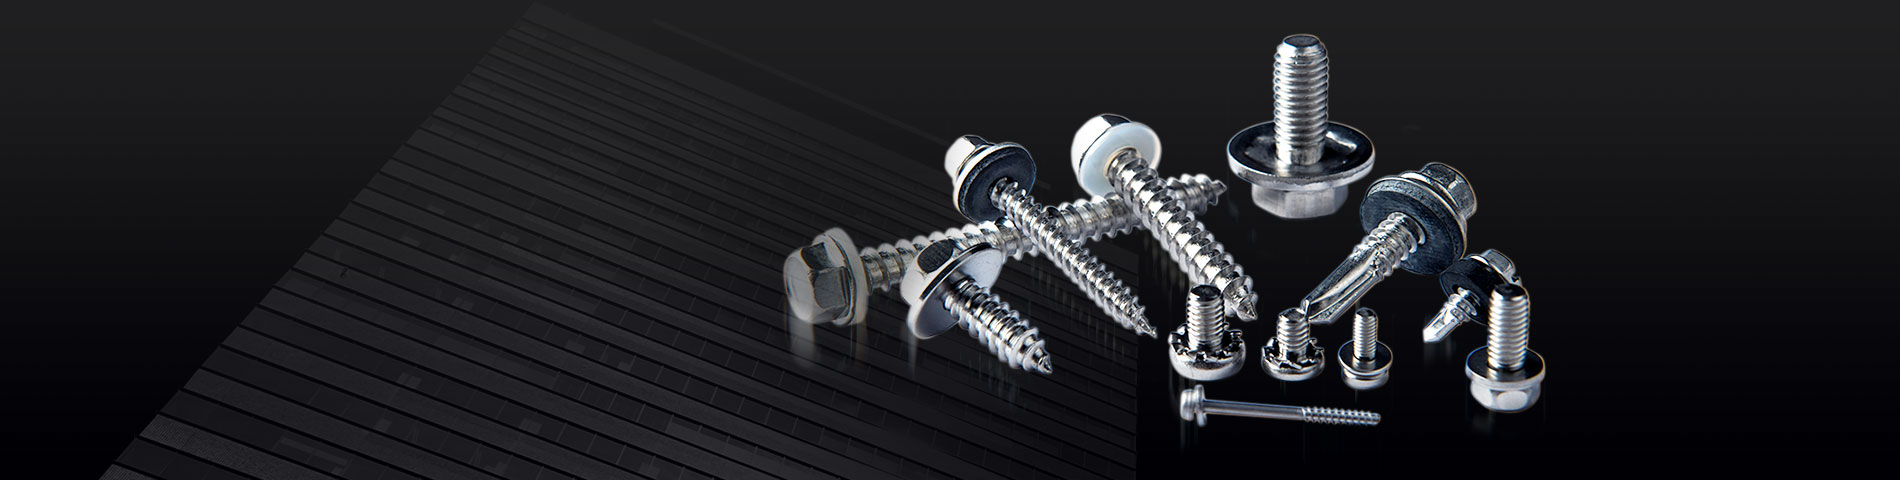 45 Years of Experience  in the Manufacture of  Stainless Steel Fasteners